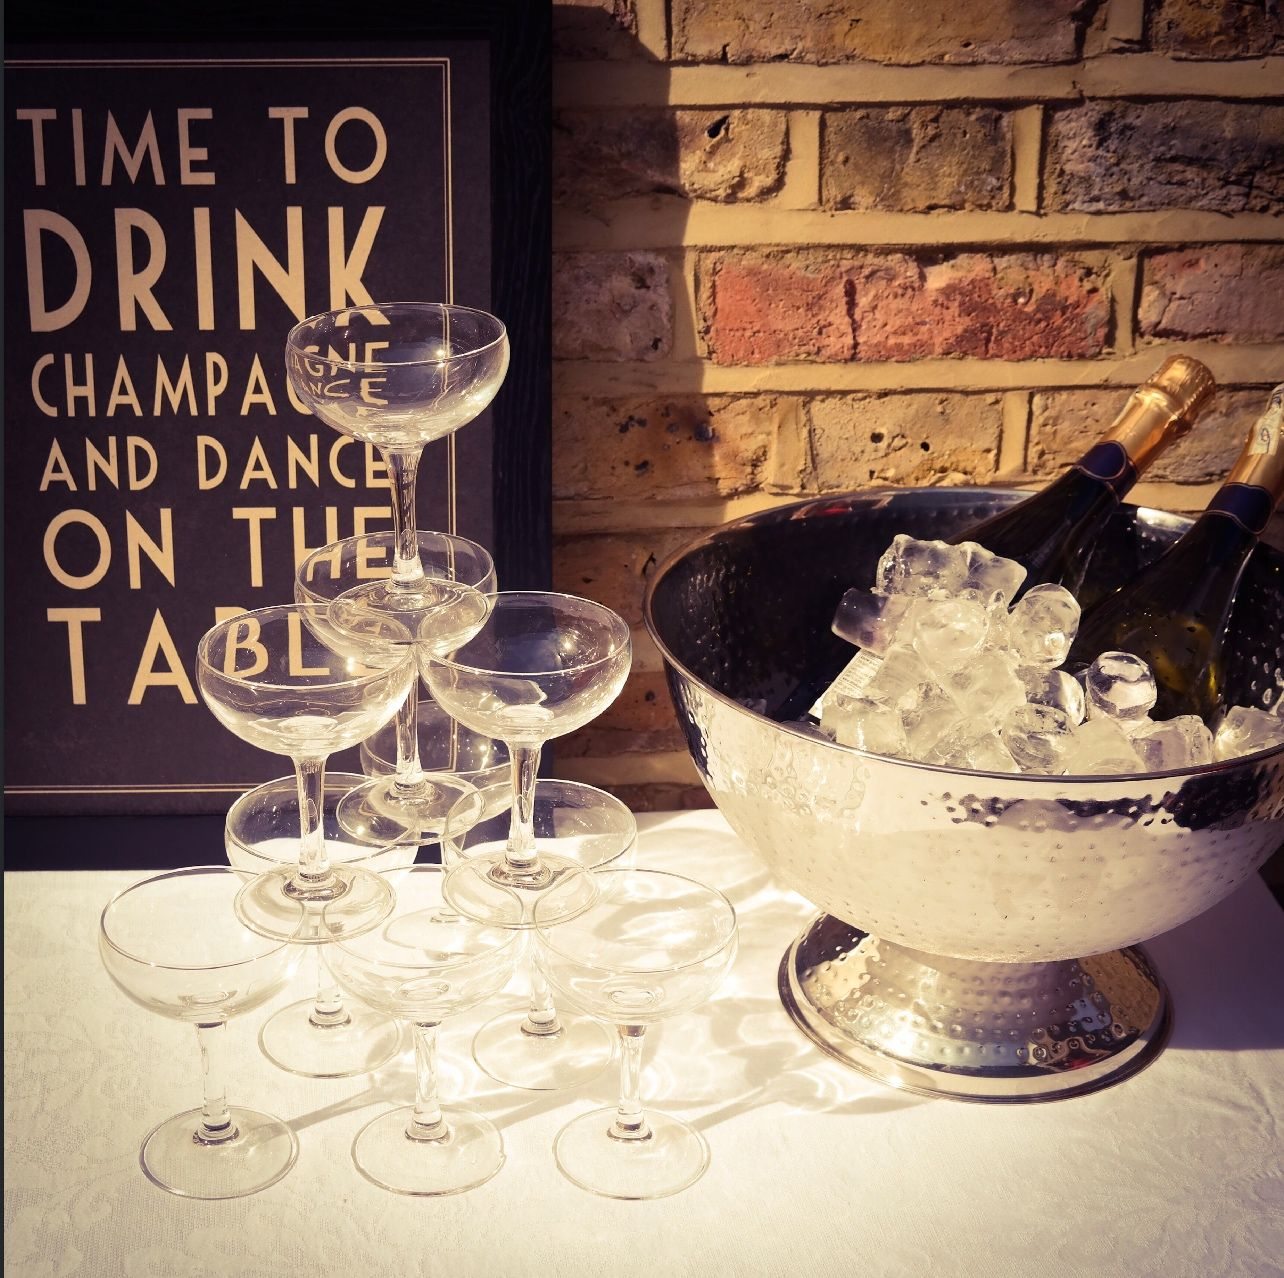 Champagne coupe tower, champagne ice bowl and framed 'Time to drink champagne and dance on the table' print. All from our prop collection and available for hire.